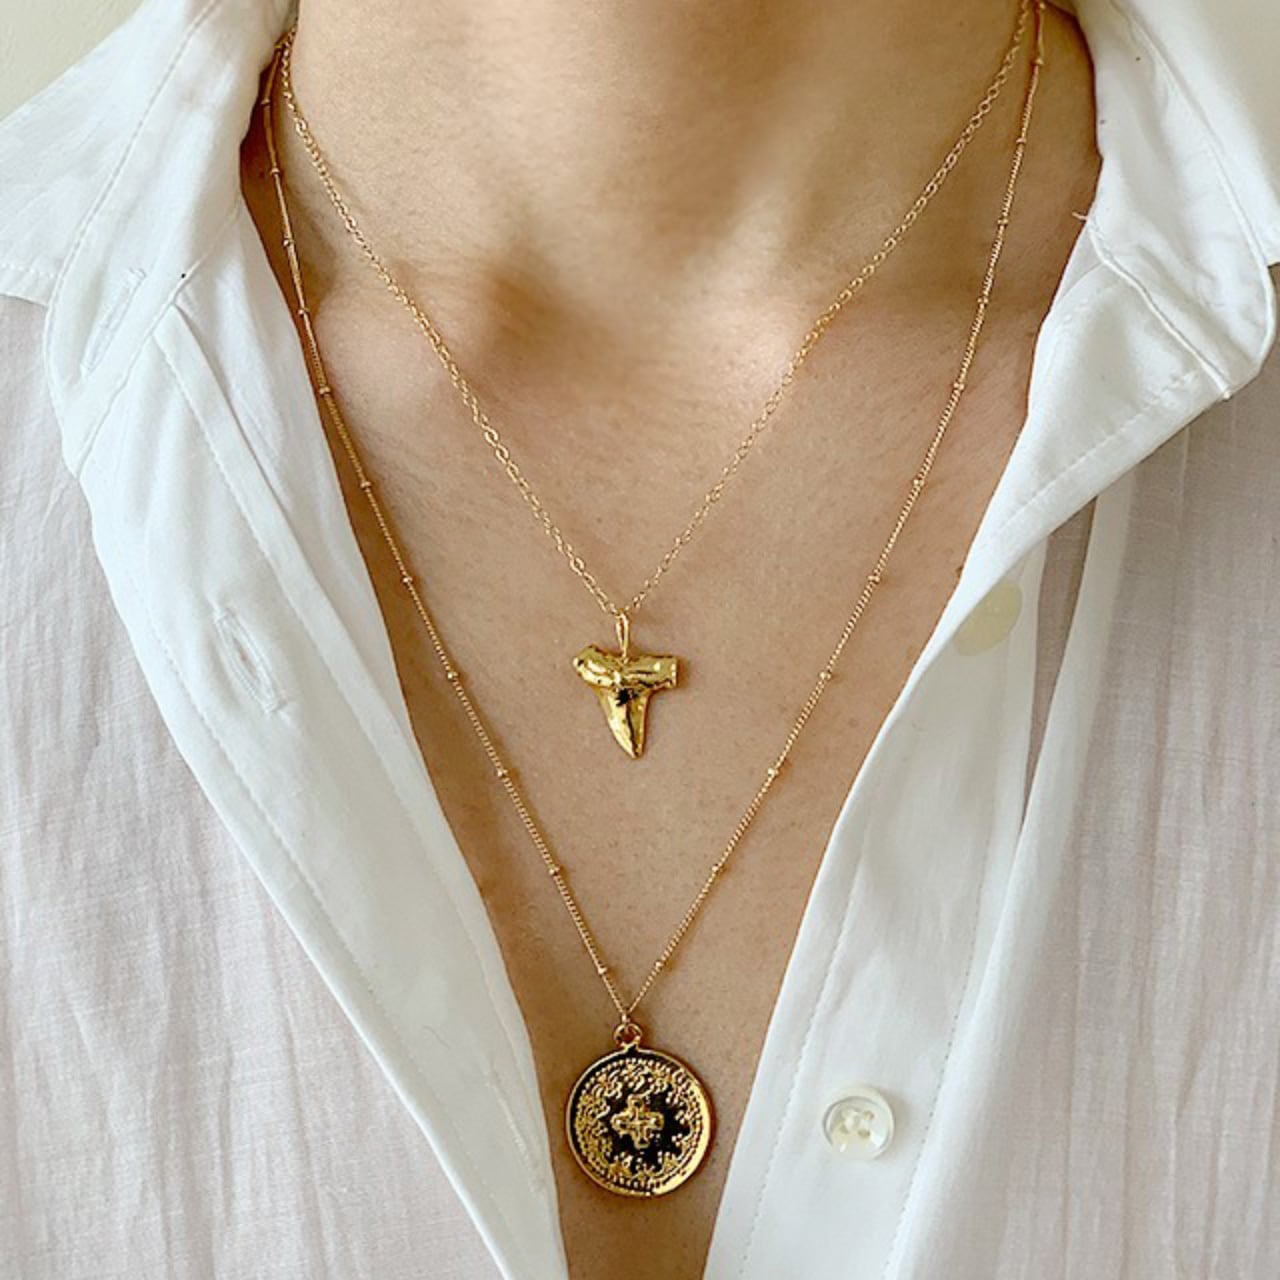 Gold coin necklace     OBH-46